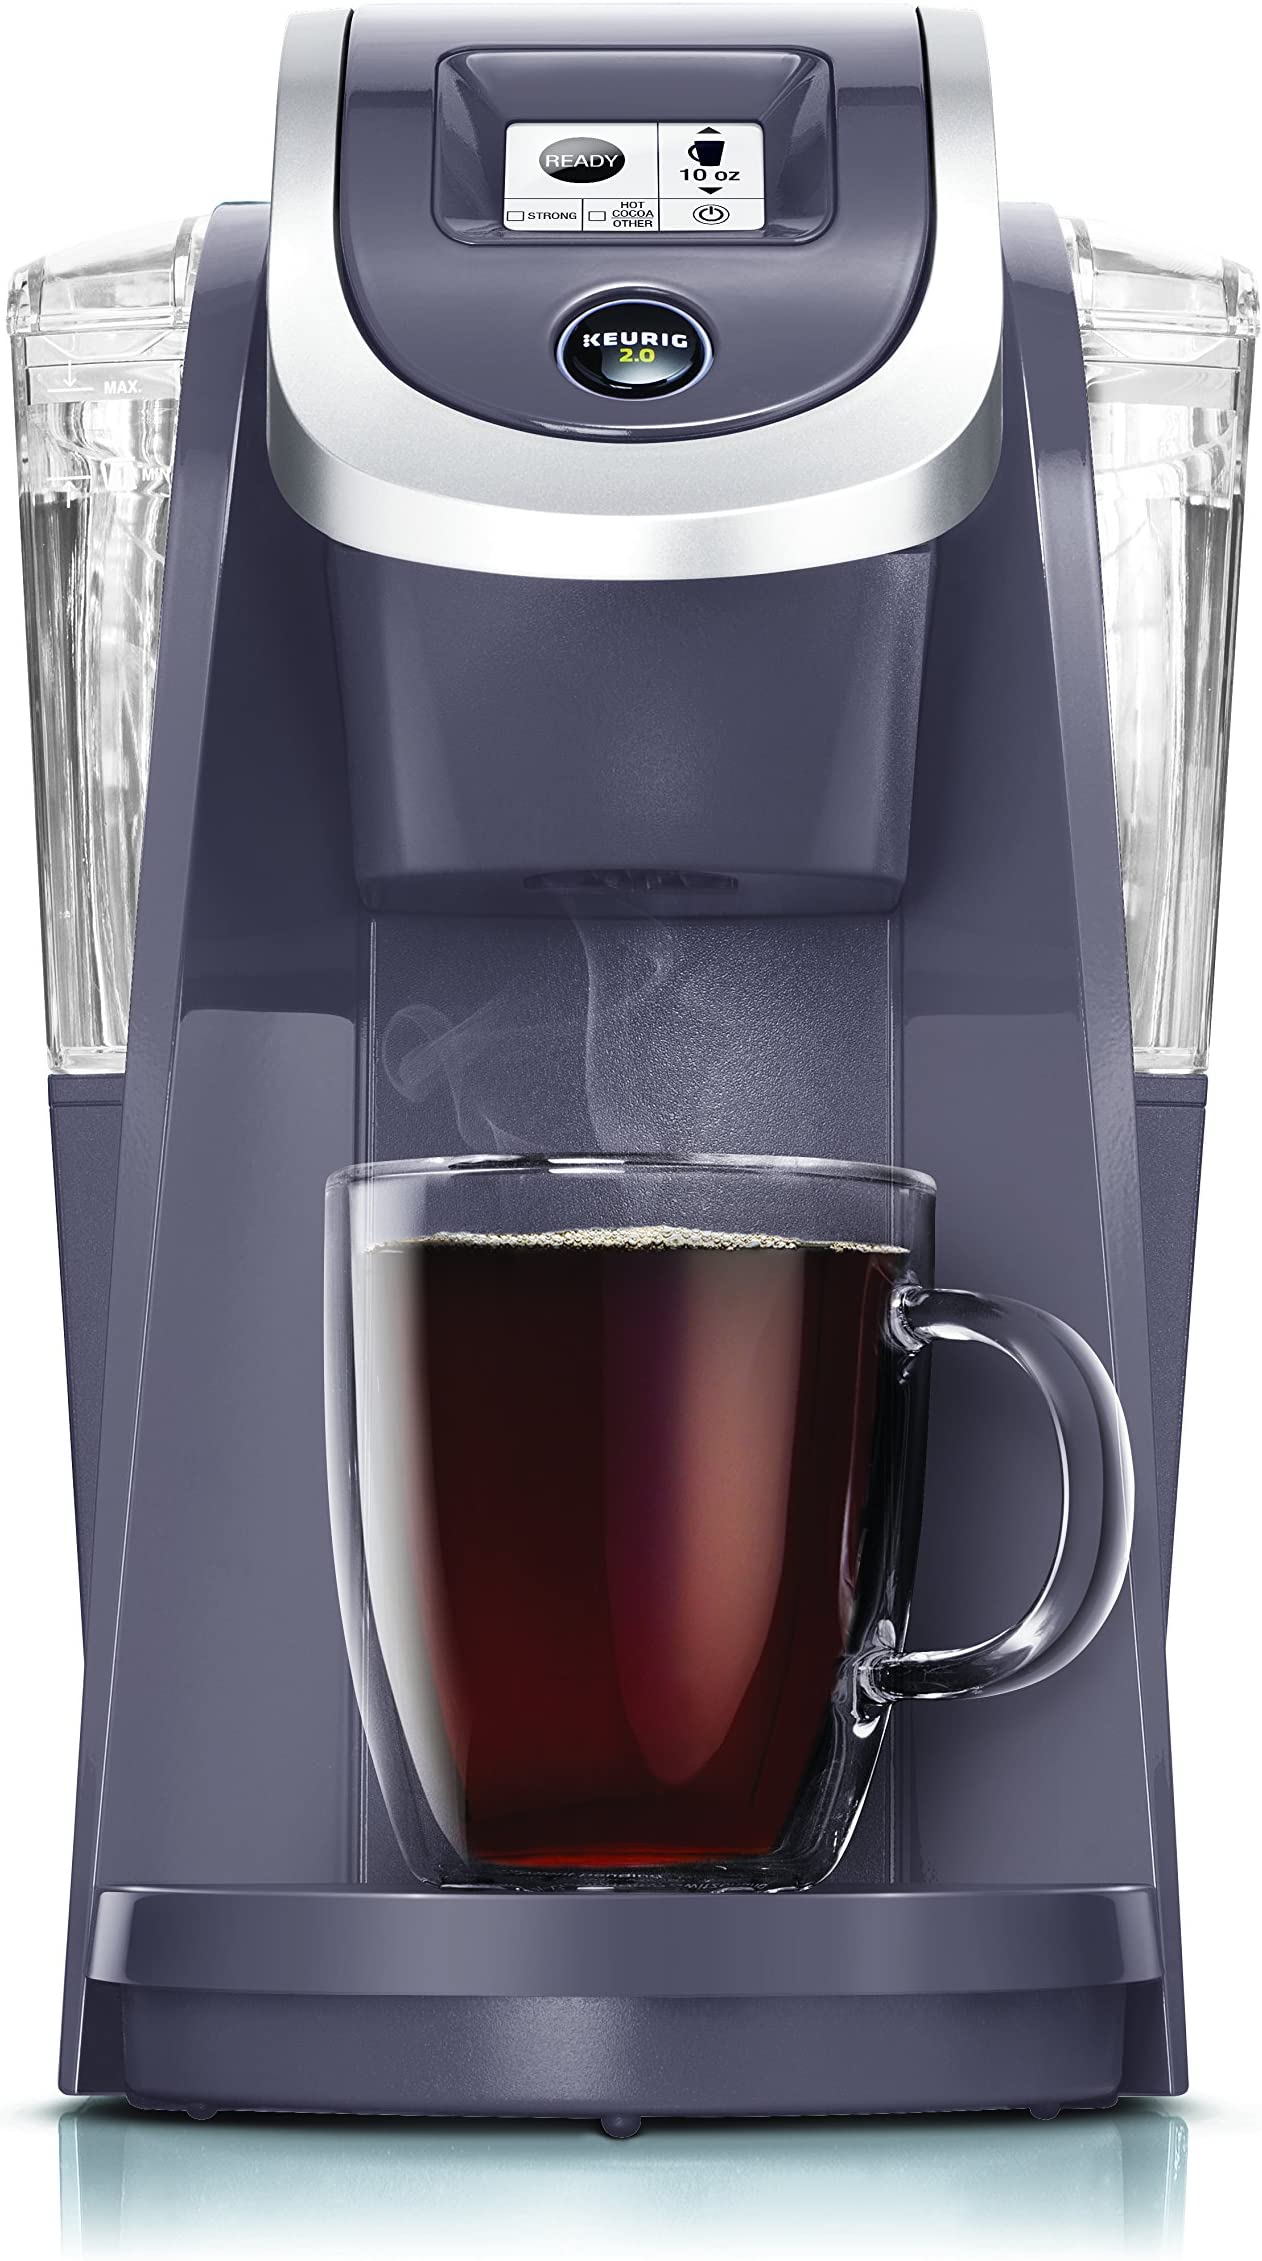 Keurig K250 Coffee Maker, Single Serve K-Cup Pod Coffee Brewer, With Strength Control, Plum Grey